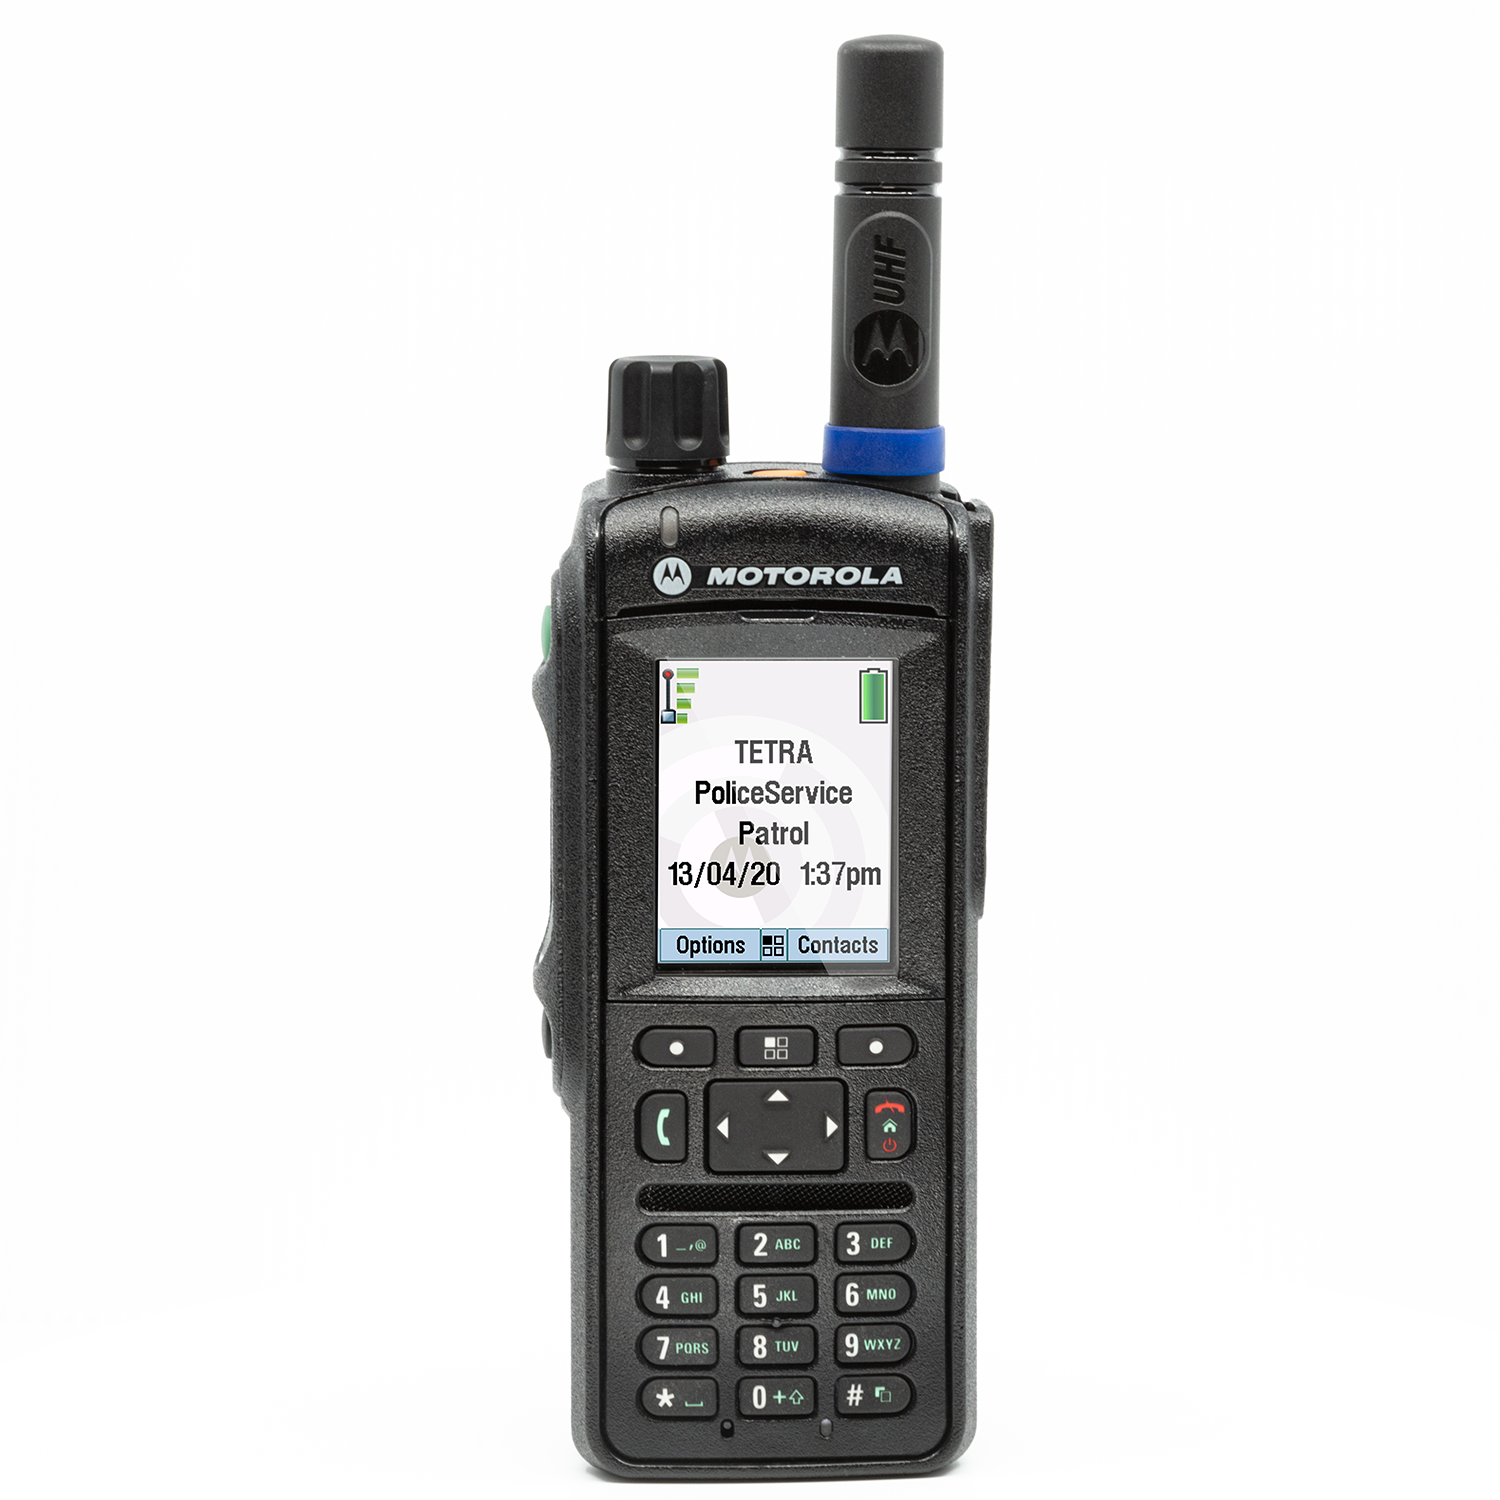 Mtp6650 Tetra Portable Two Way Radio Motorola Solutions Europe